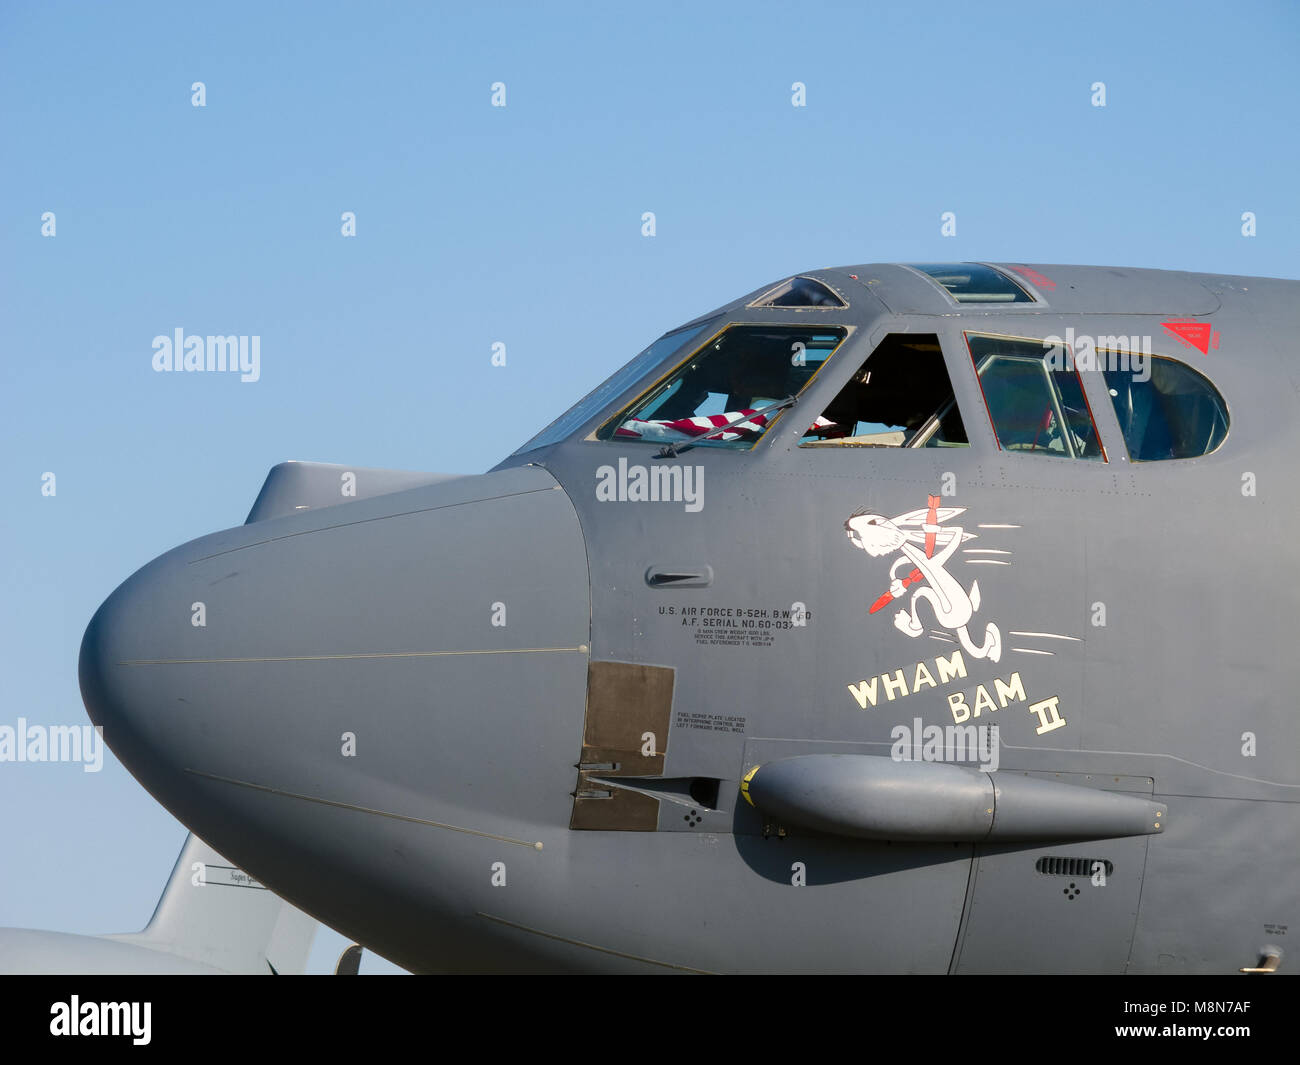 B-52 Stratofortress bomber by Boeing, closeup of strategic bomber jet at International Aviation & Space Salon in Stock Photo